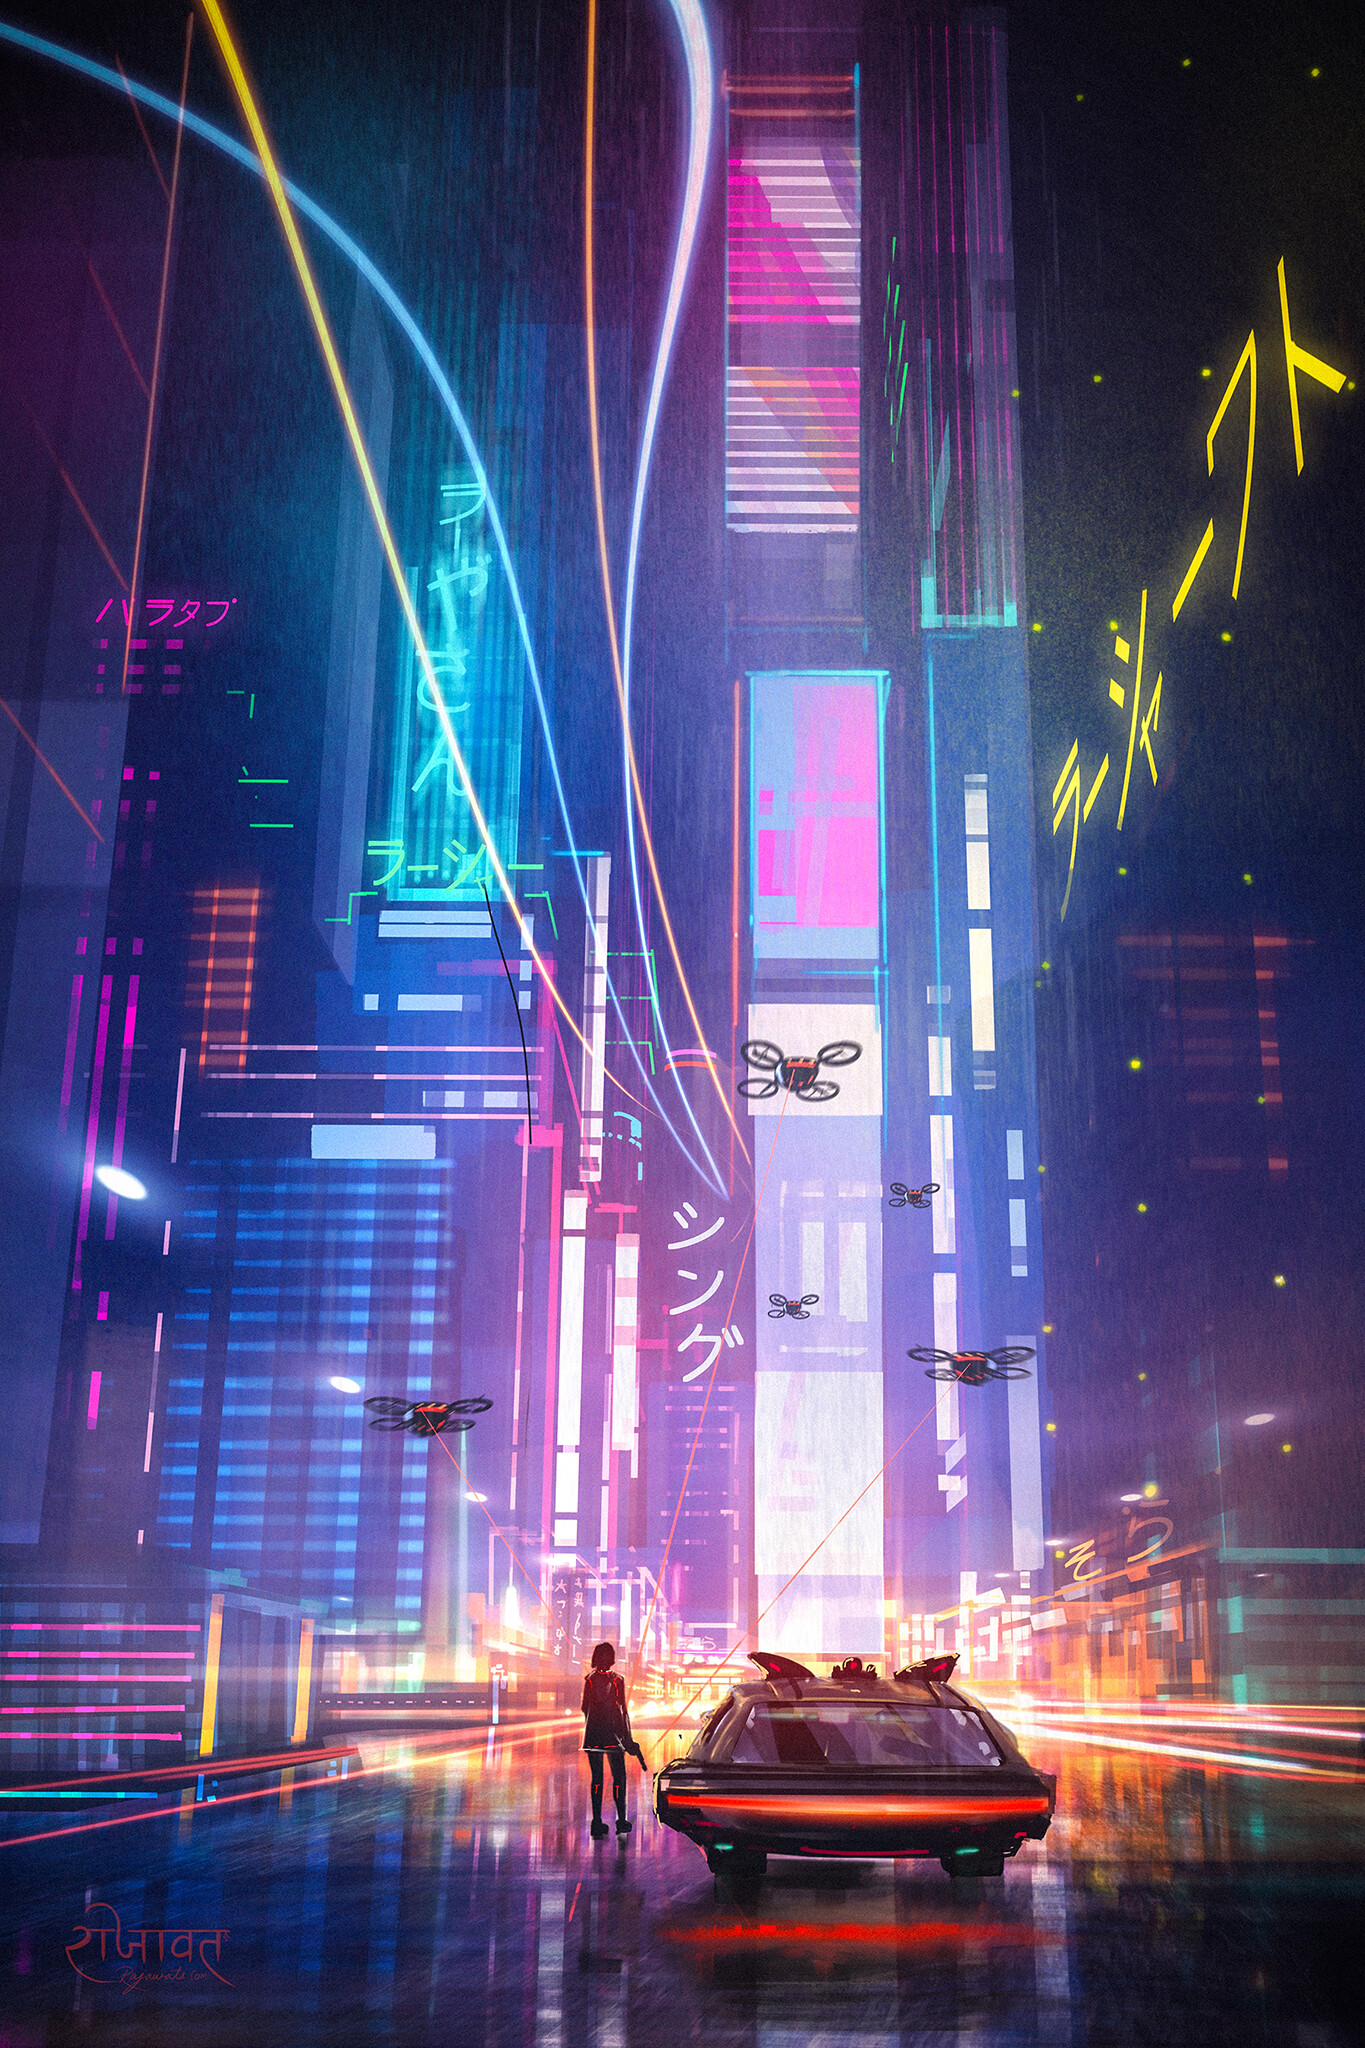 CYBERPUNK WALLPAPER PHONE HD 2077 GAME CAR CITY